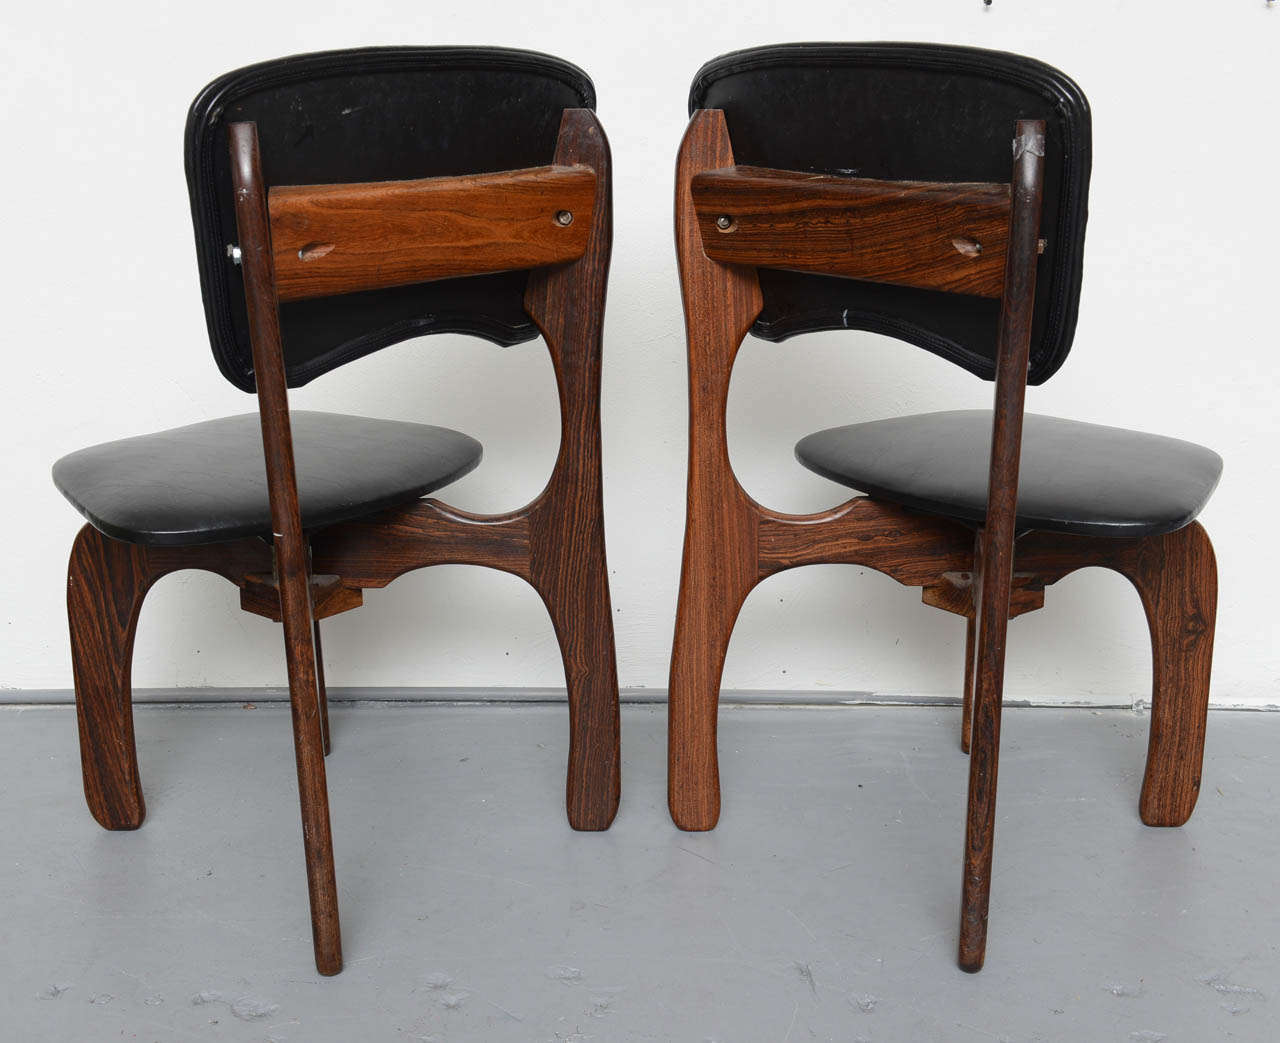 1970s Rosewood Chairs by Don Shoemaker, Mexico 6